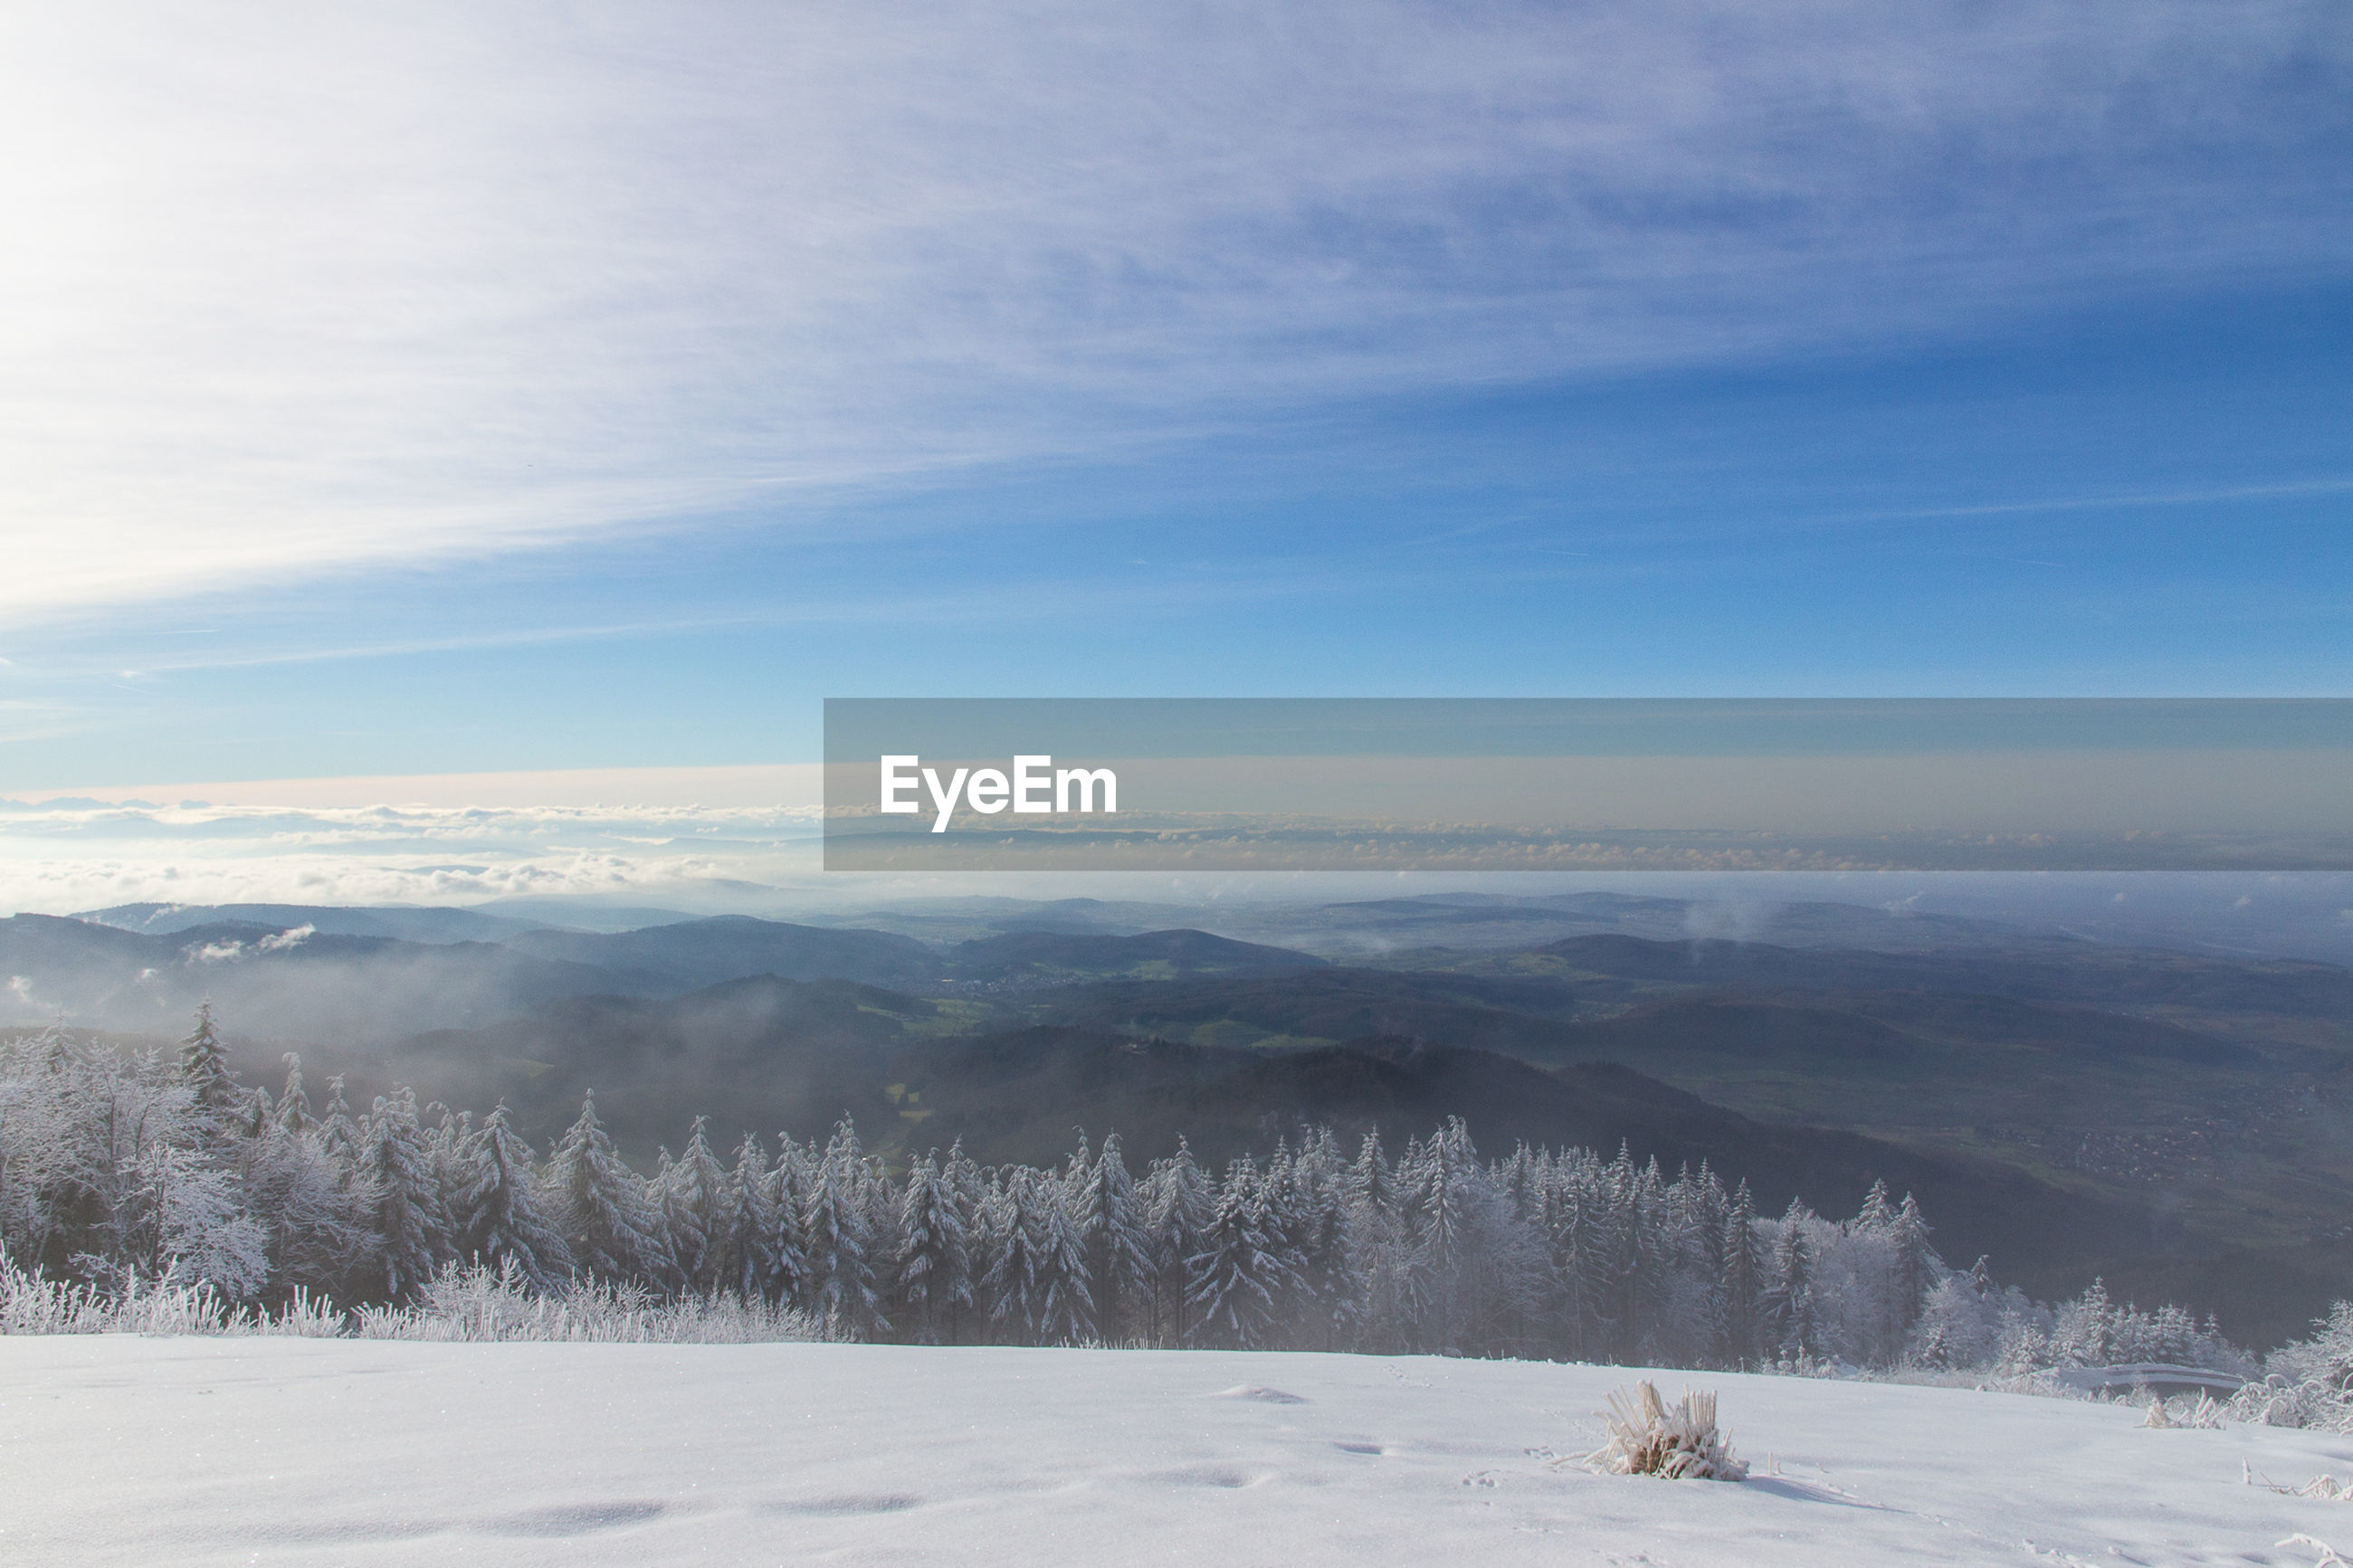 Scenic view of snowcapped landscape against mountains in winter